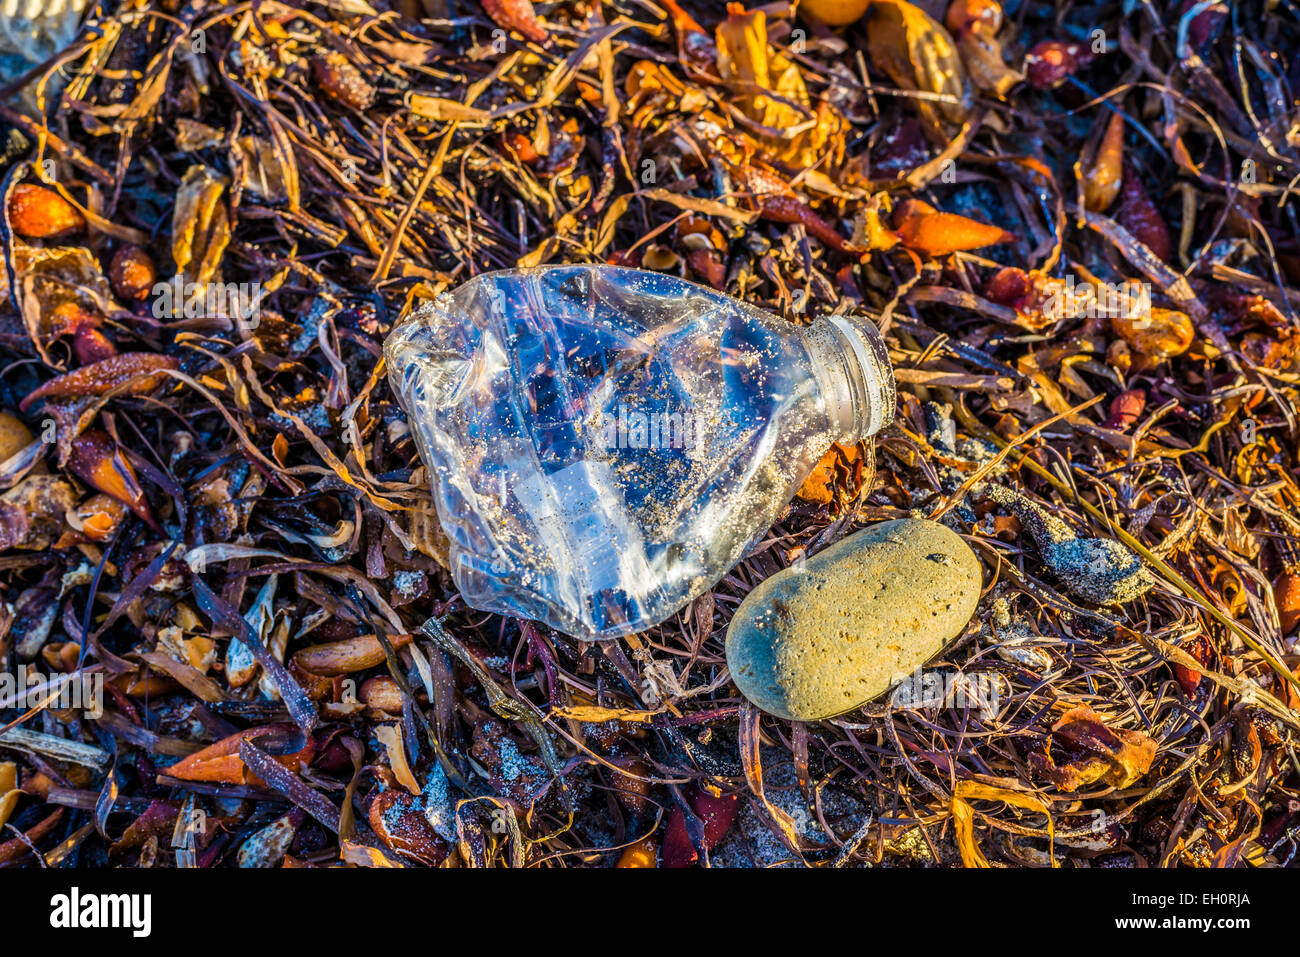 Plastic water bottle left as trash lying atop kelp on a beach. - Stock Image